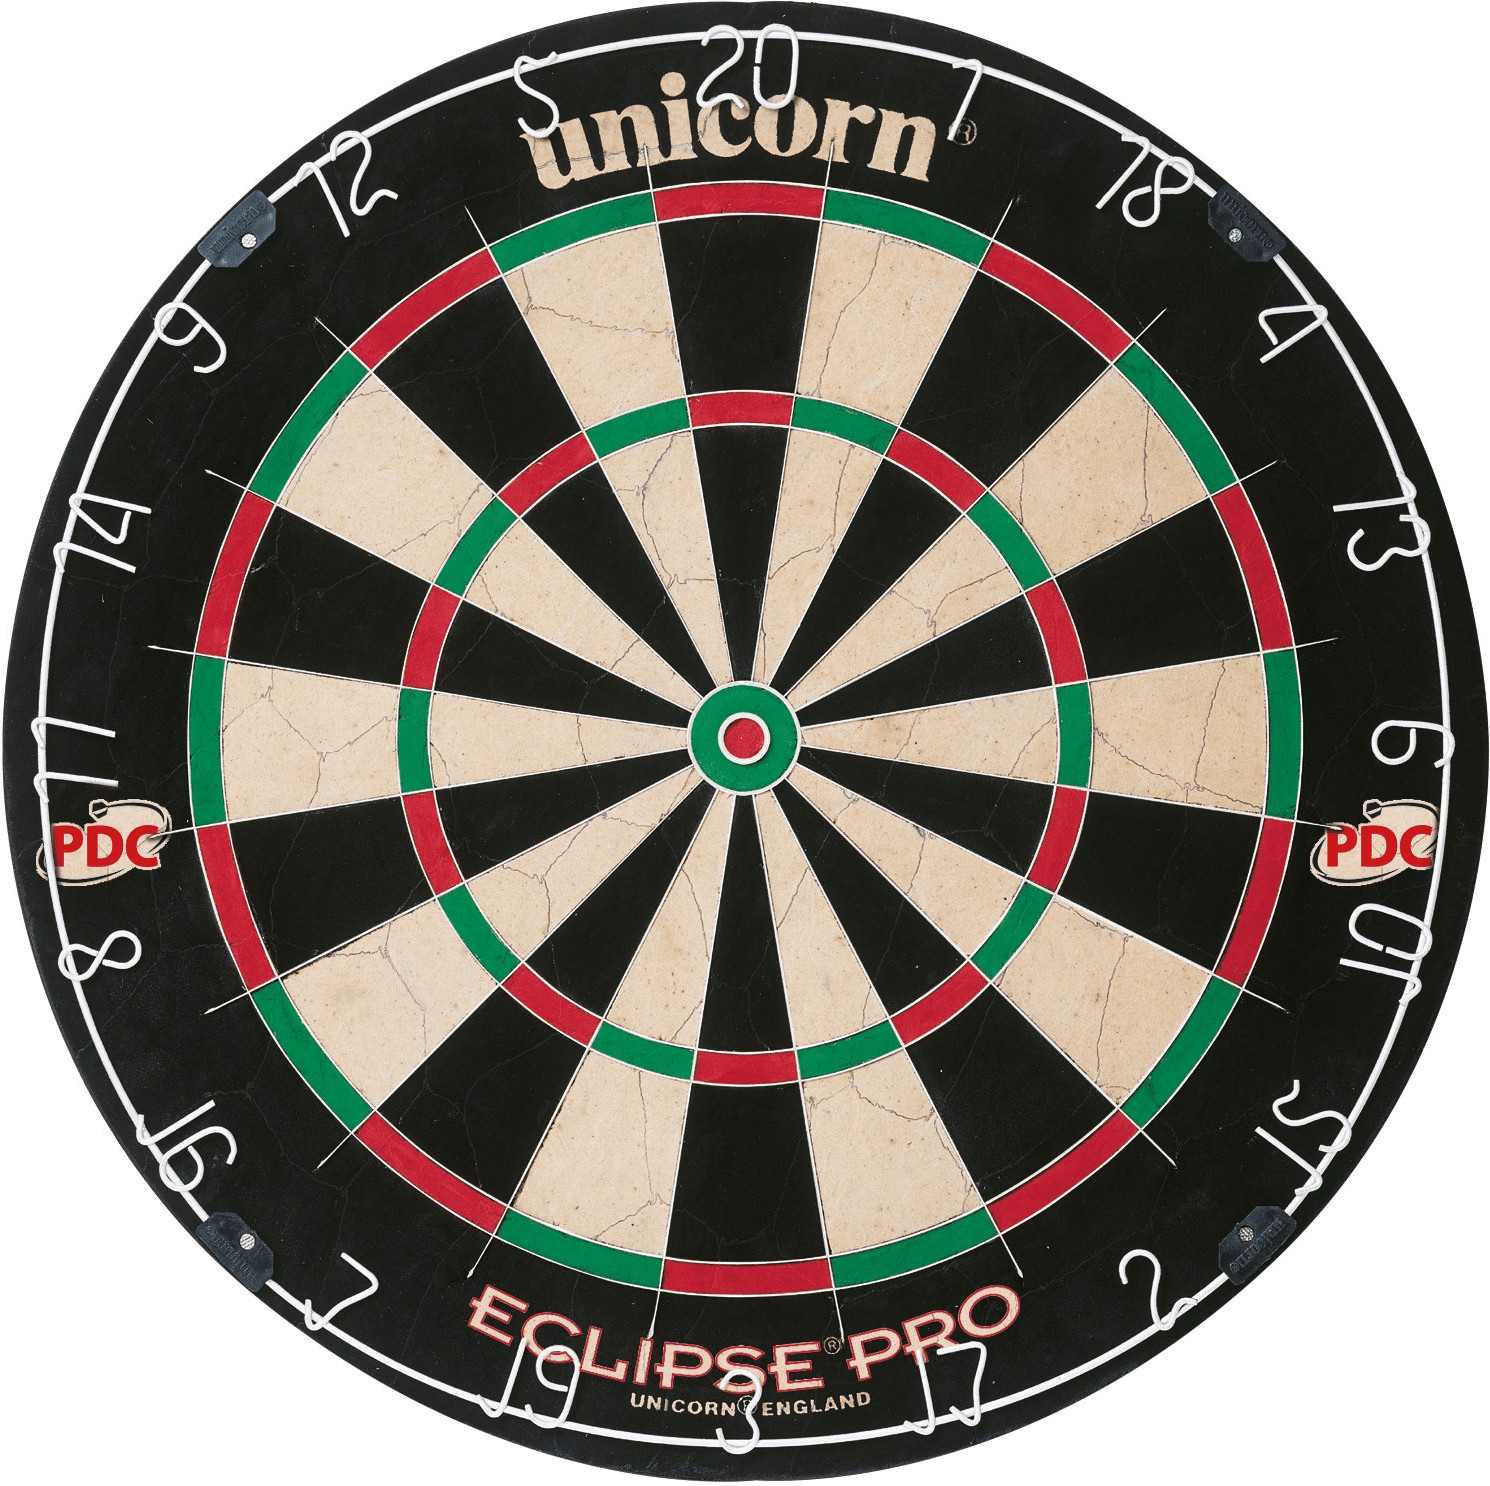 Unicorn Darts Eclipse Pro Dartboard